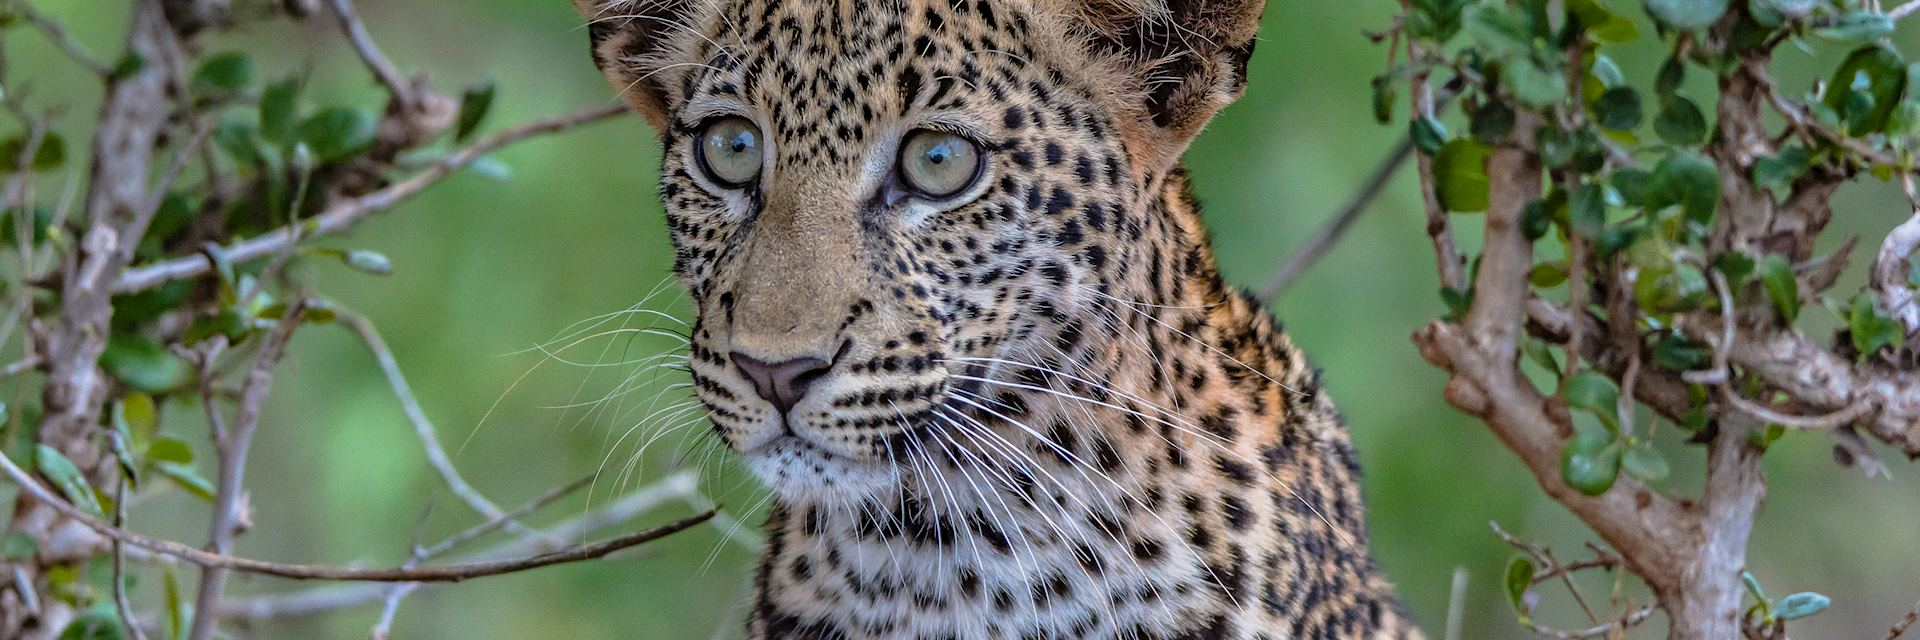 Young leopard in Tsavo East National Park